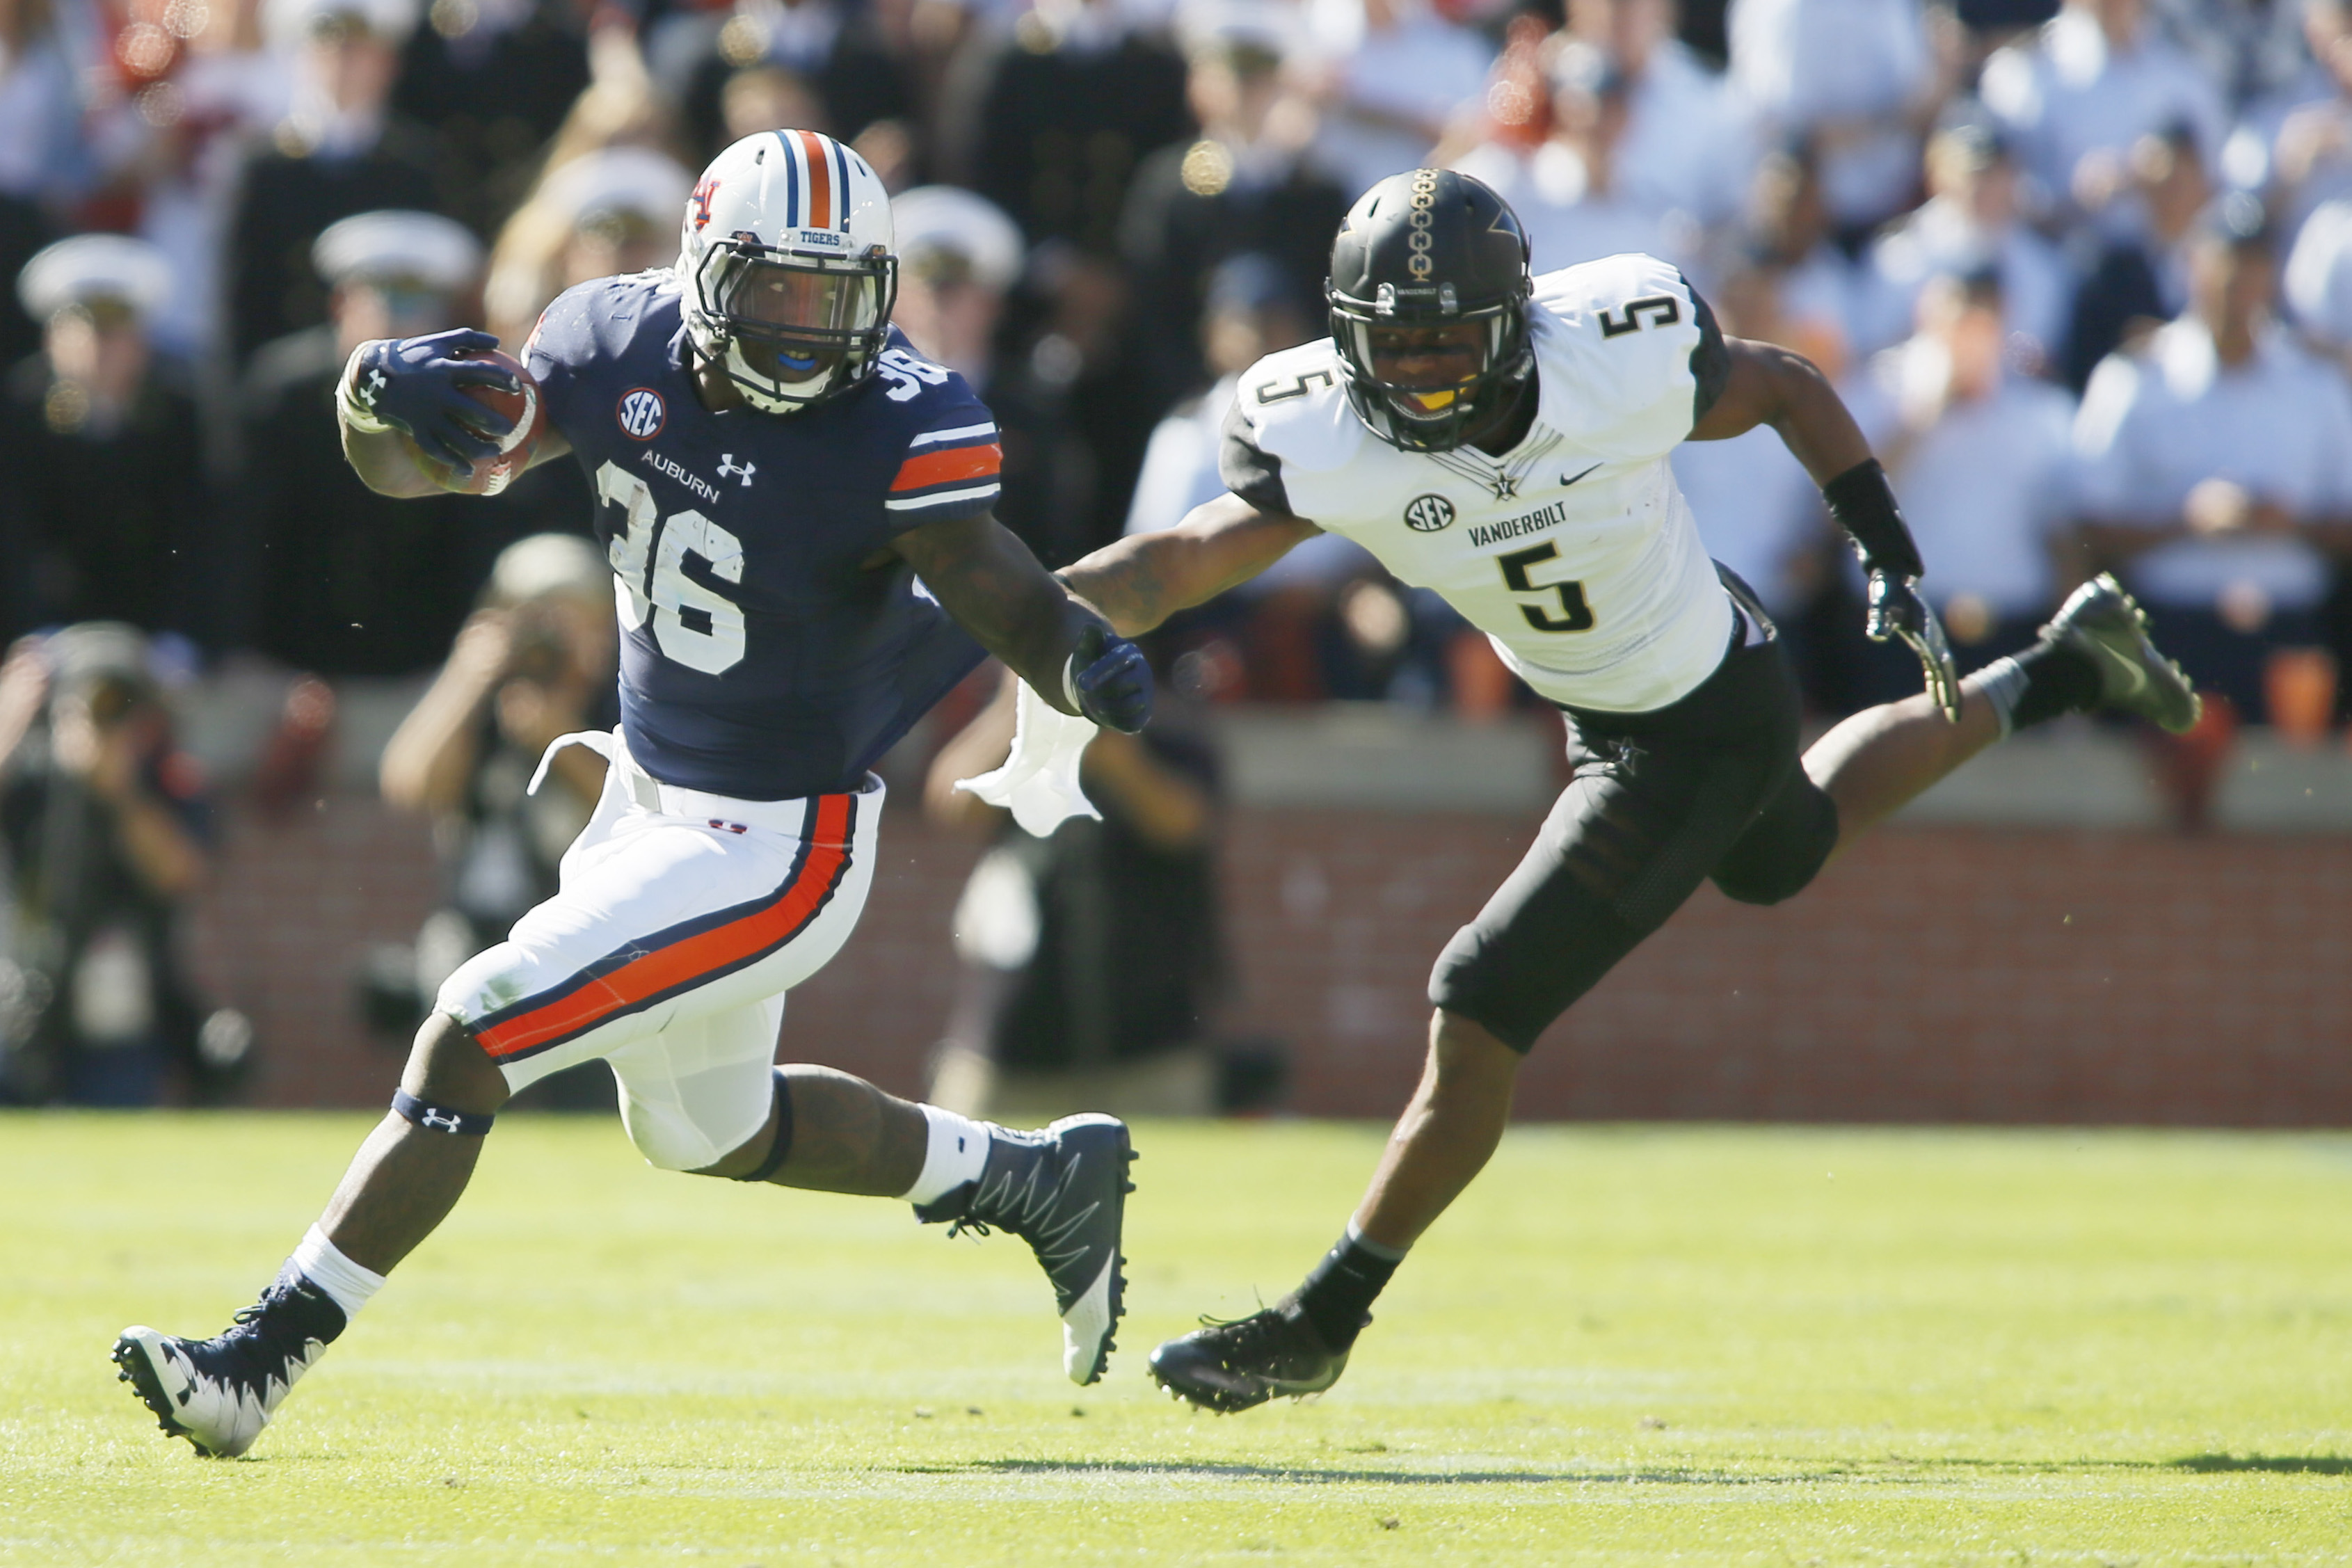 9654591-ncaa-football-vanderbilt-at-auburn